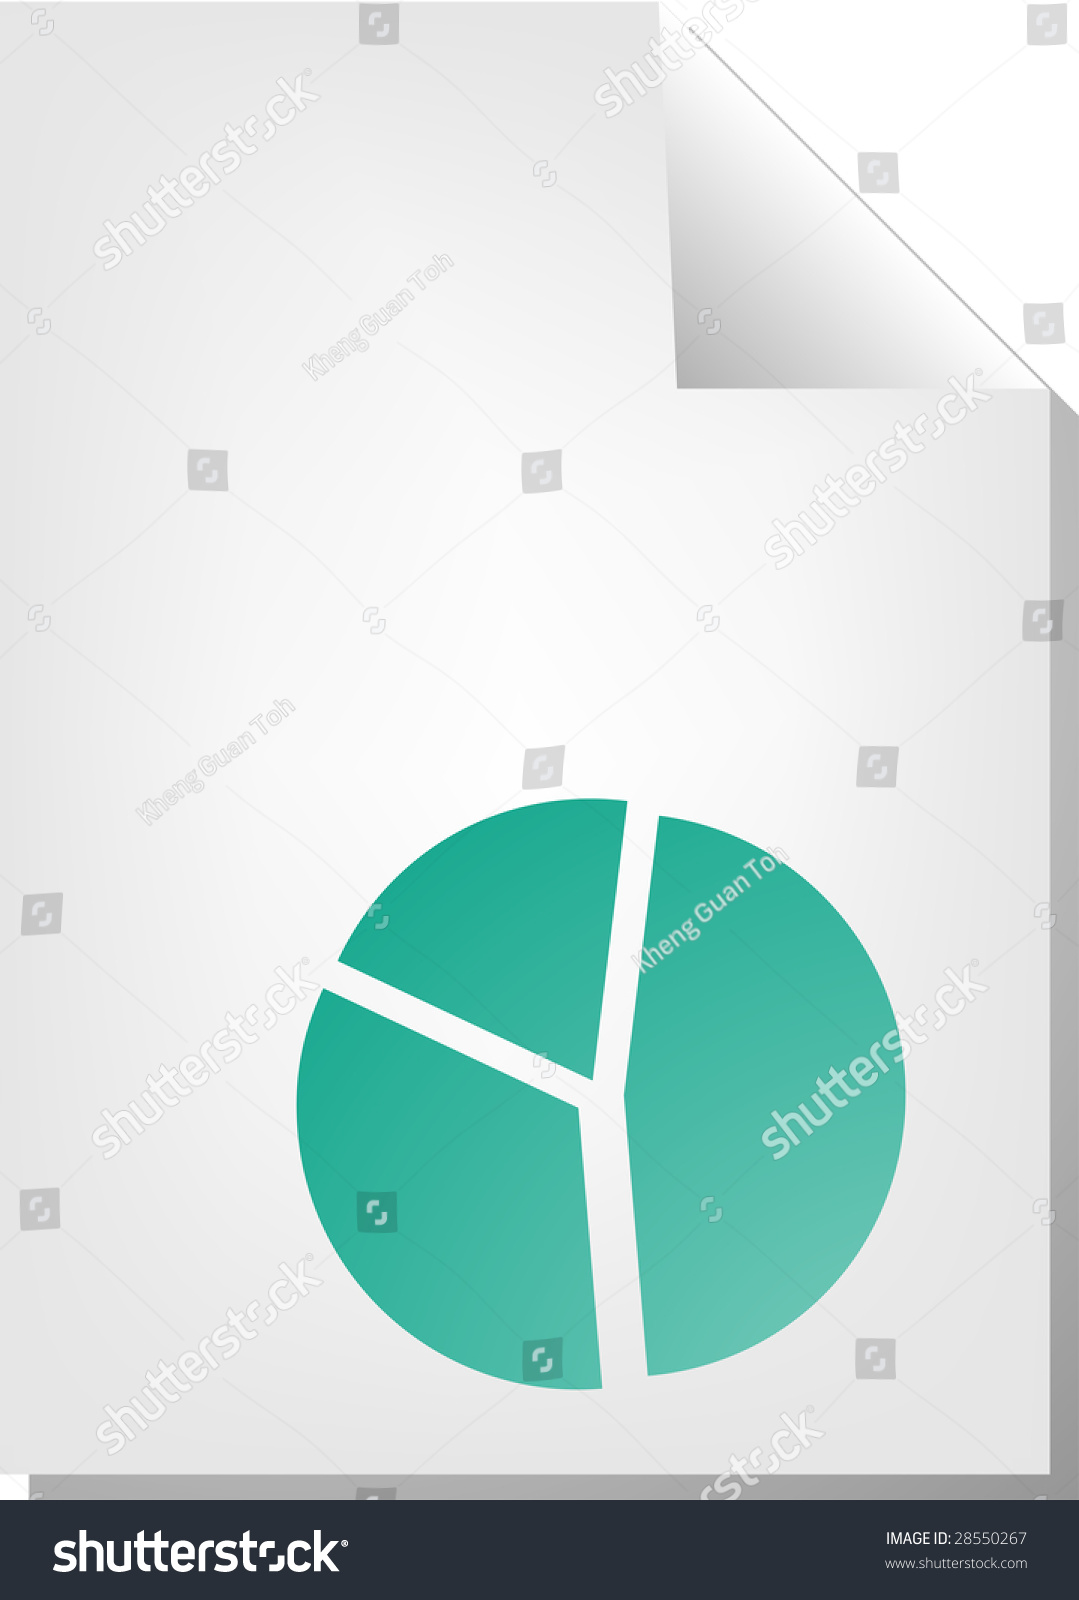 hight resolution of pie chart document file type illustration clipart